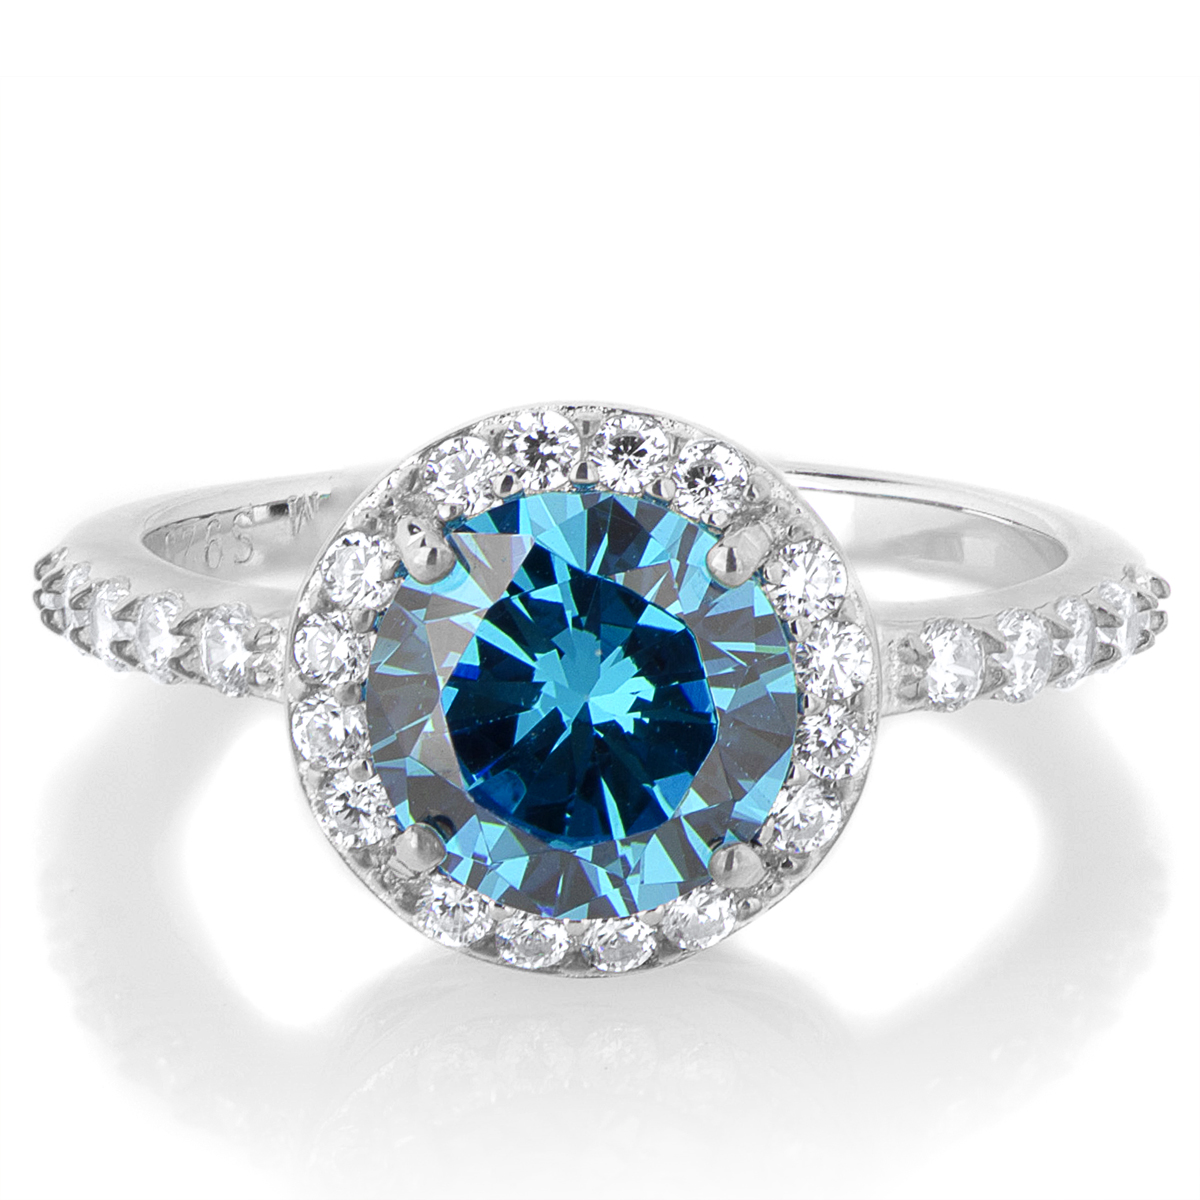 aquamarine a rings story diamond march give for weddings main ring that run engagement